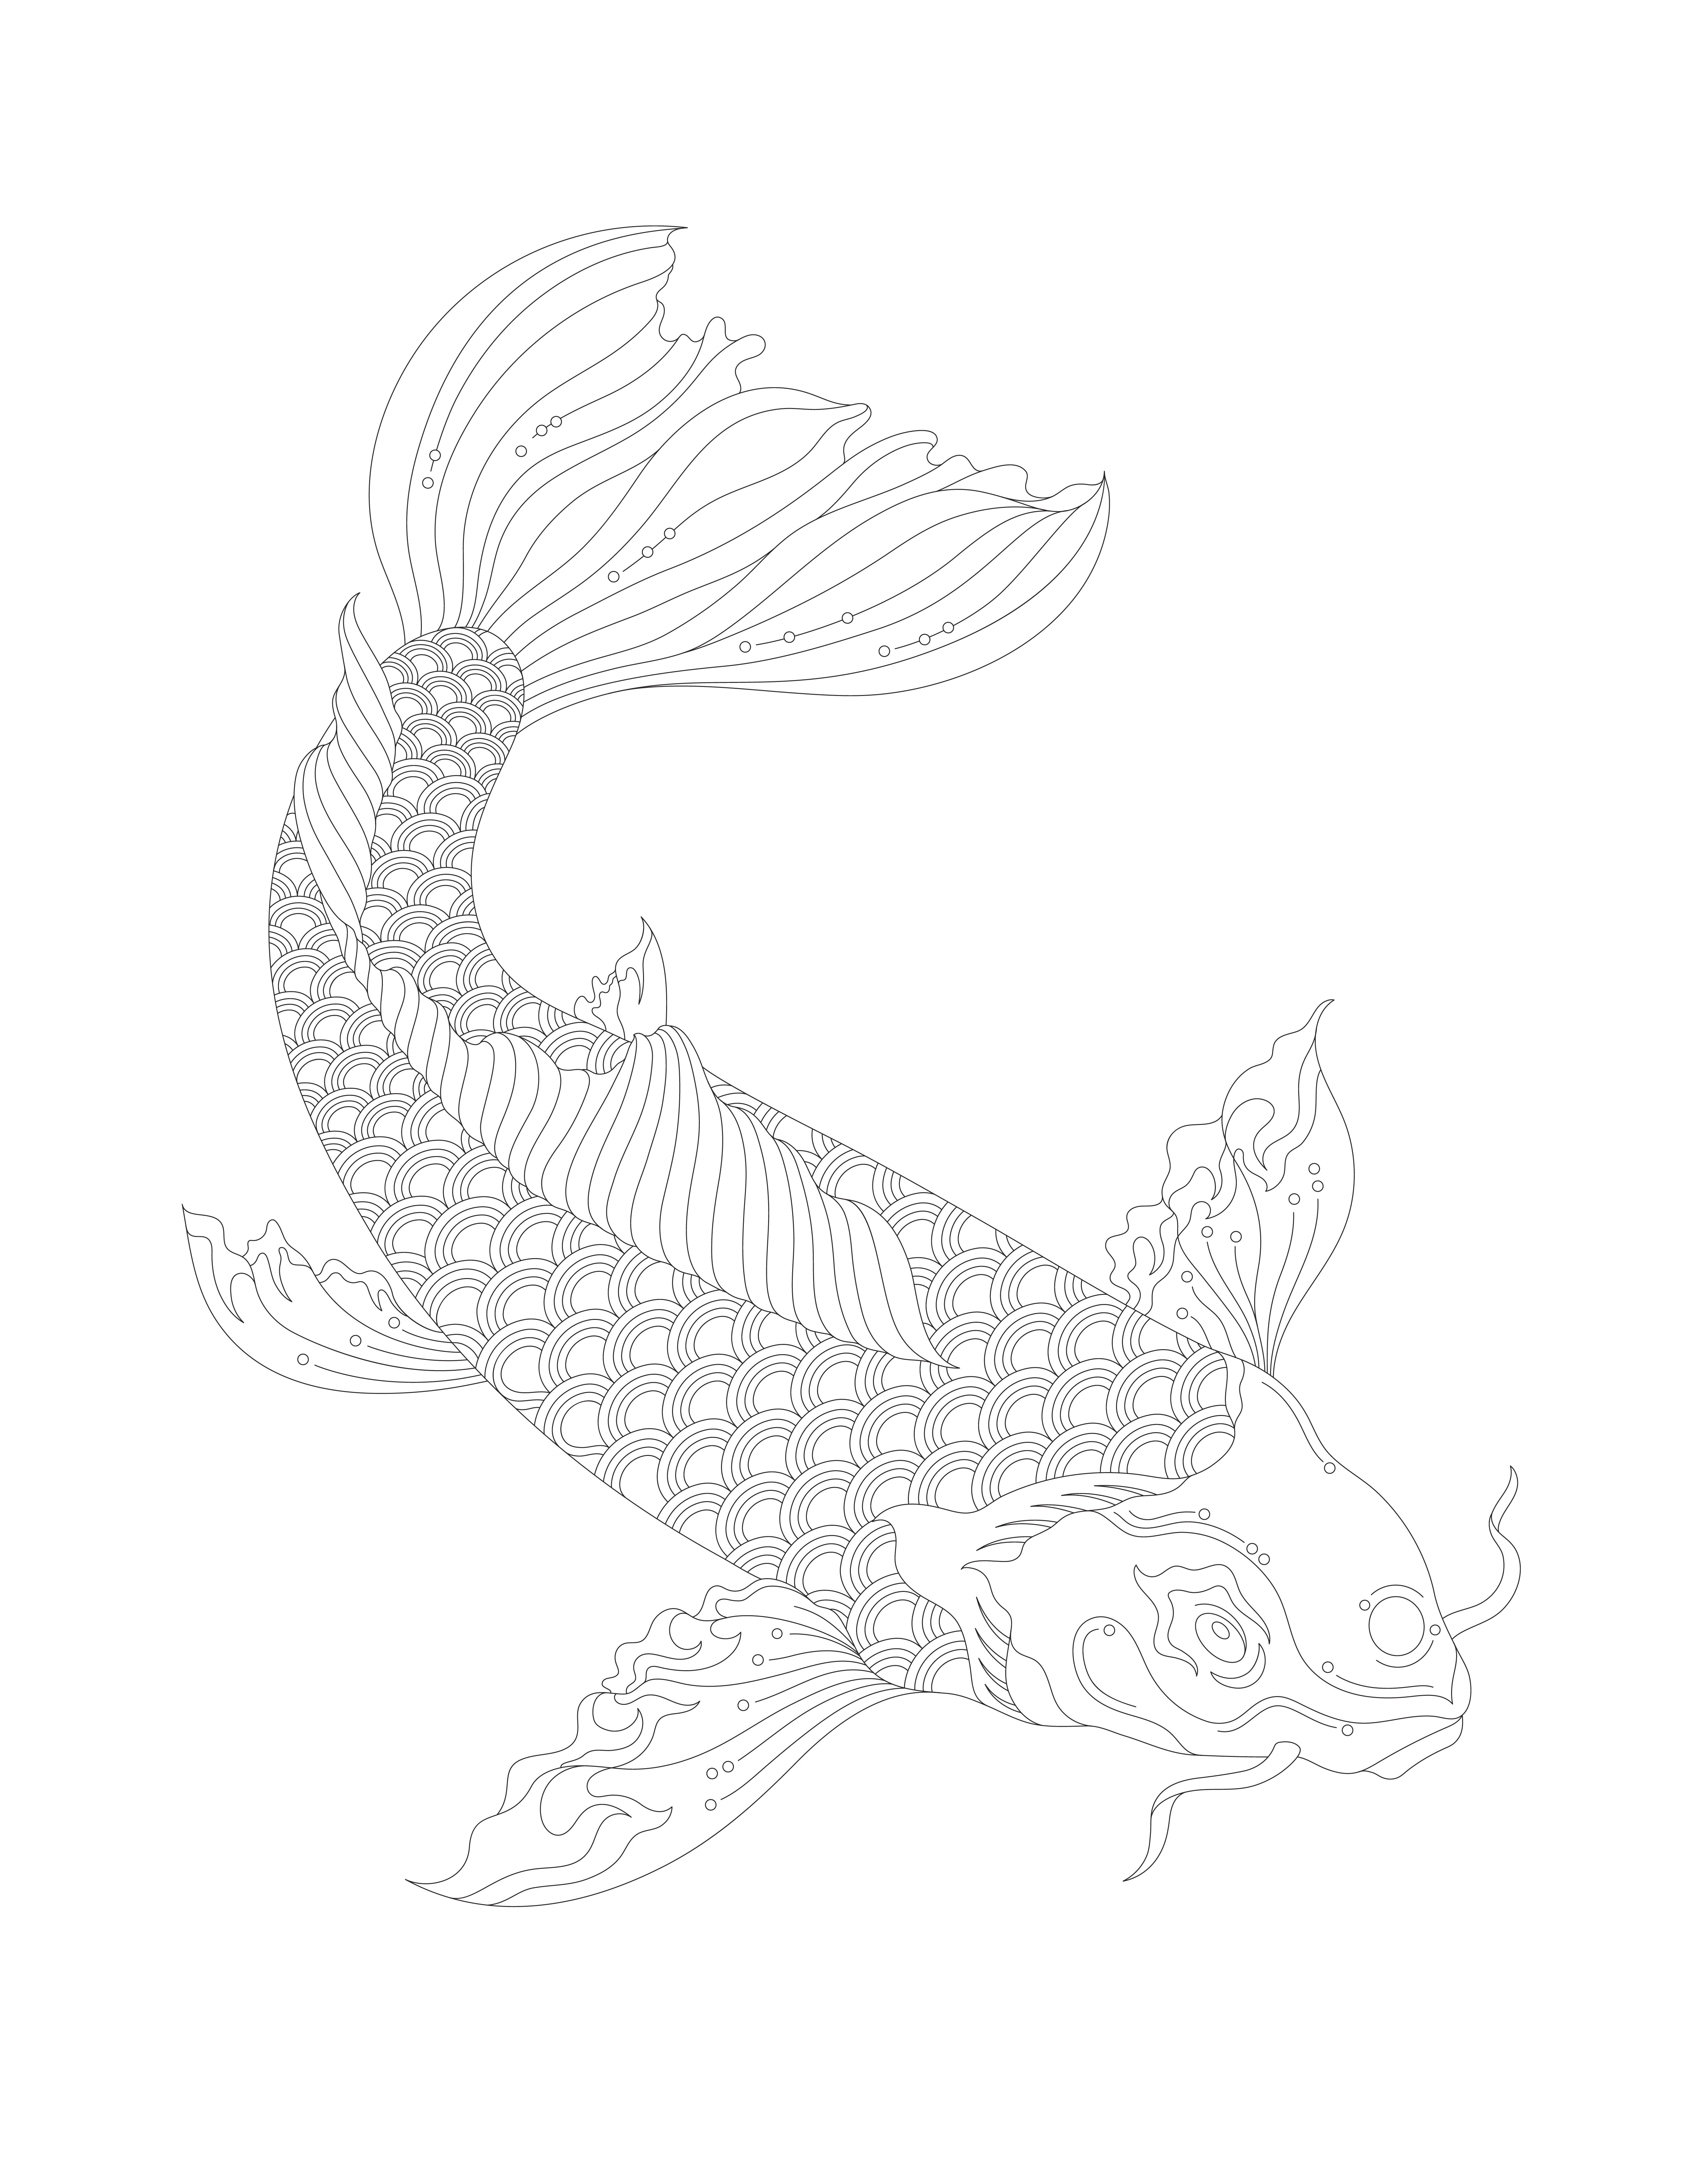 japanese koi fish coloring pages koi fish in a pond coloring page print color fun japanese coloring koi pages fish